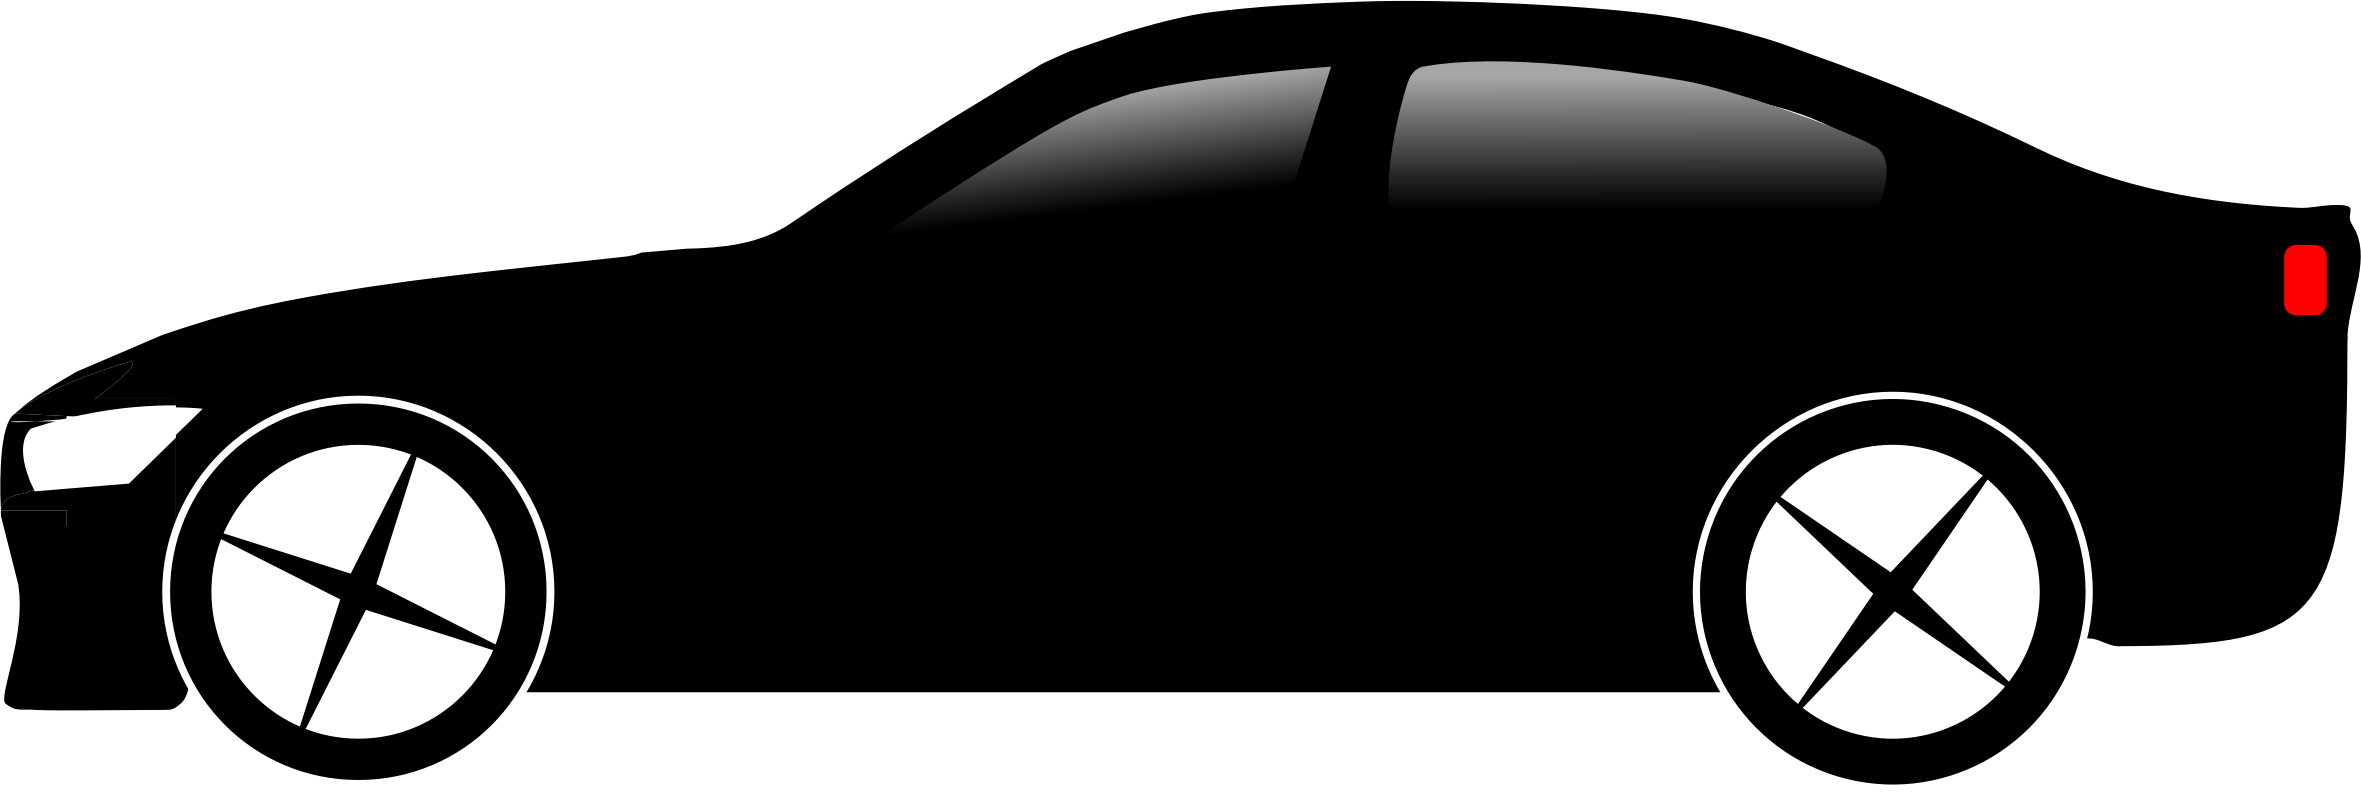 Black Car Vector image - Free stock photo - Public Domain ...